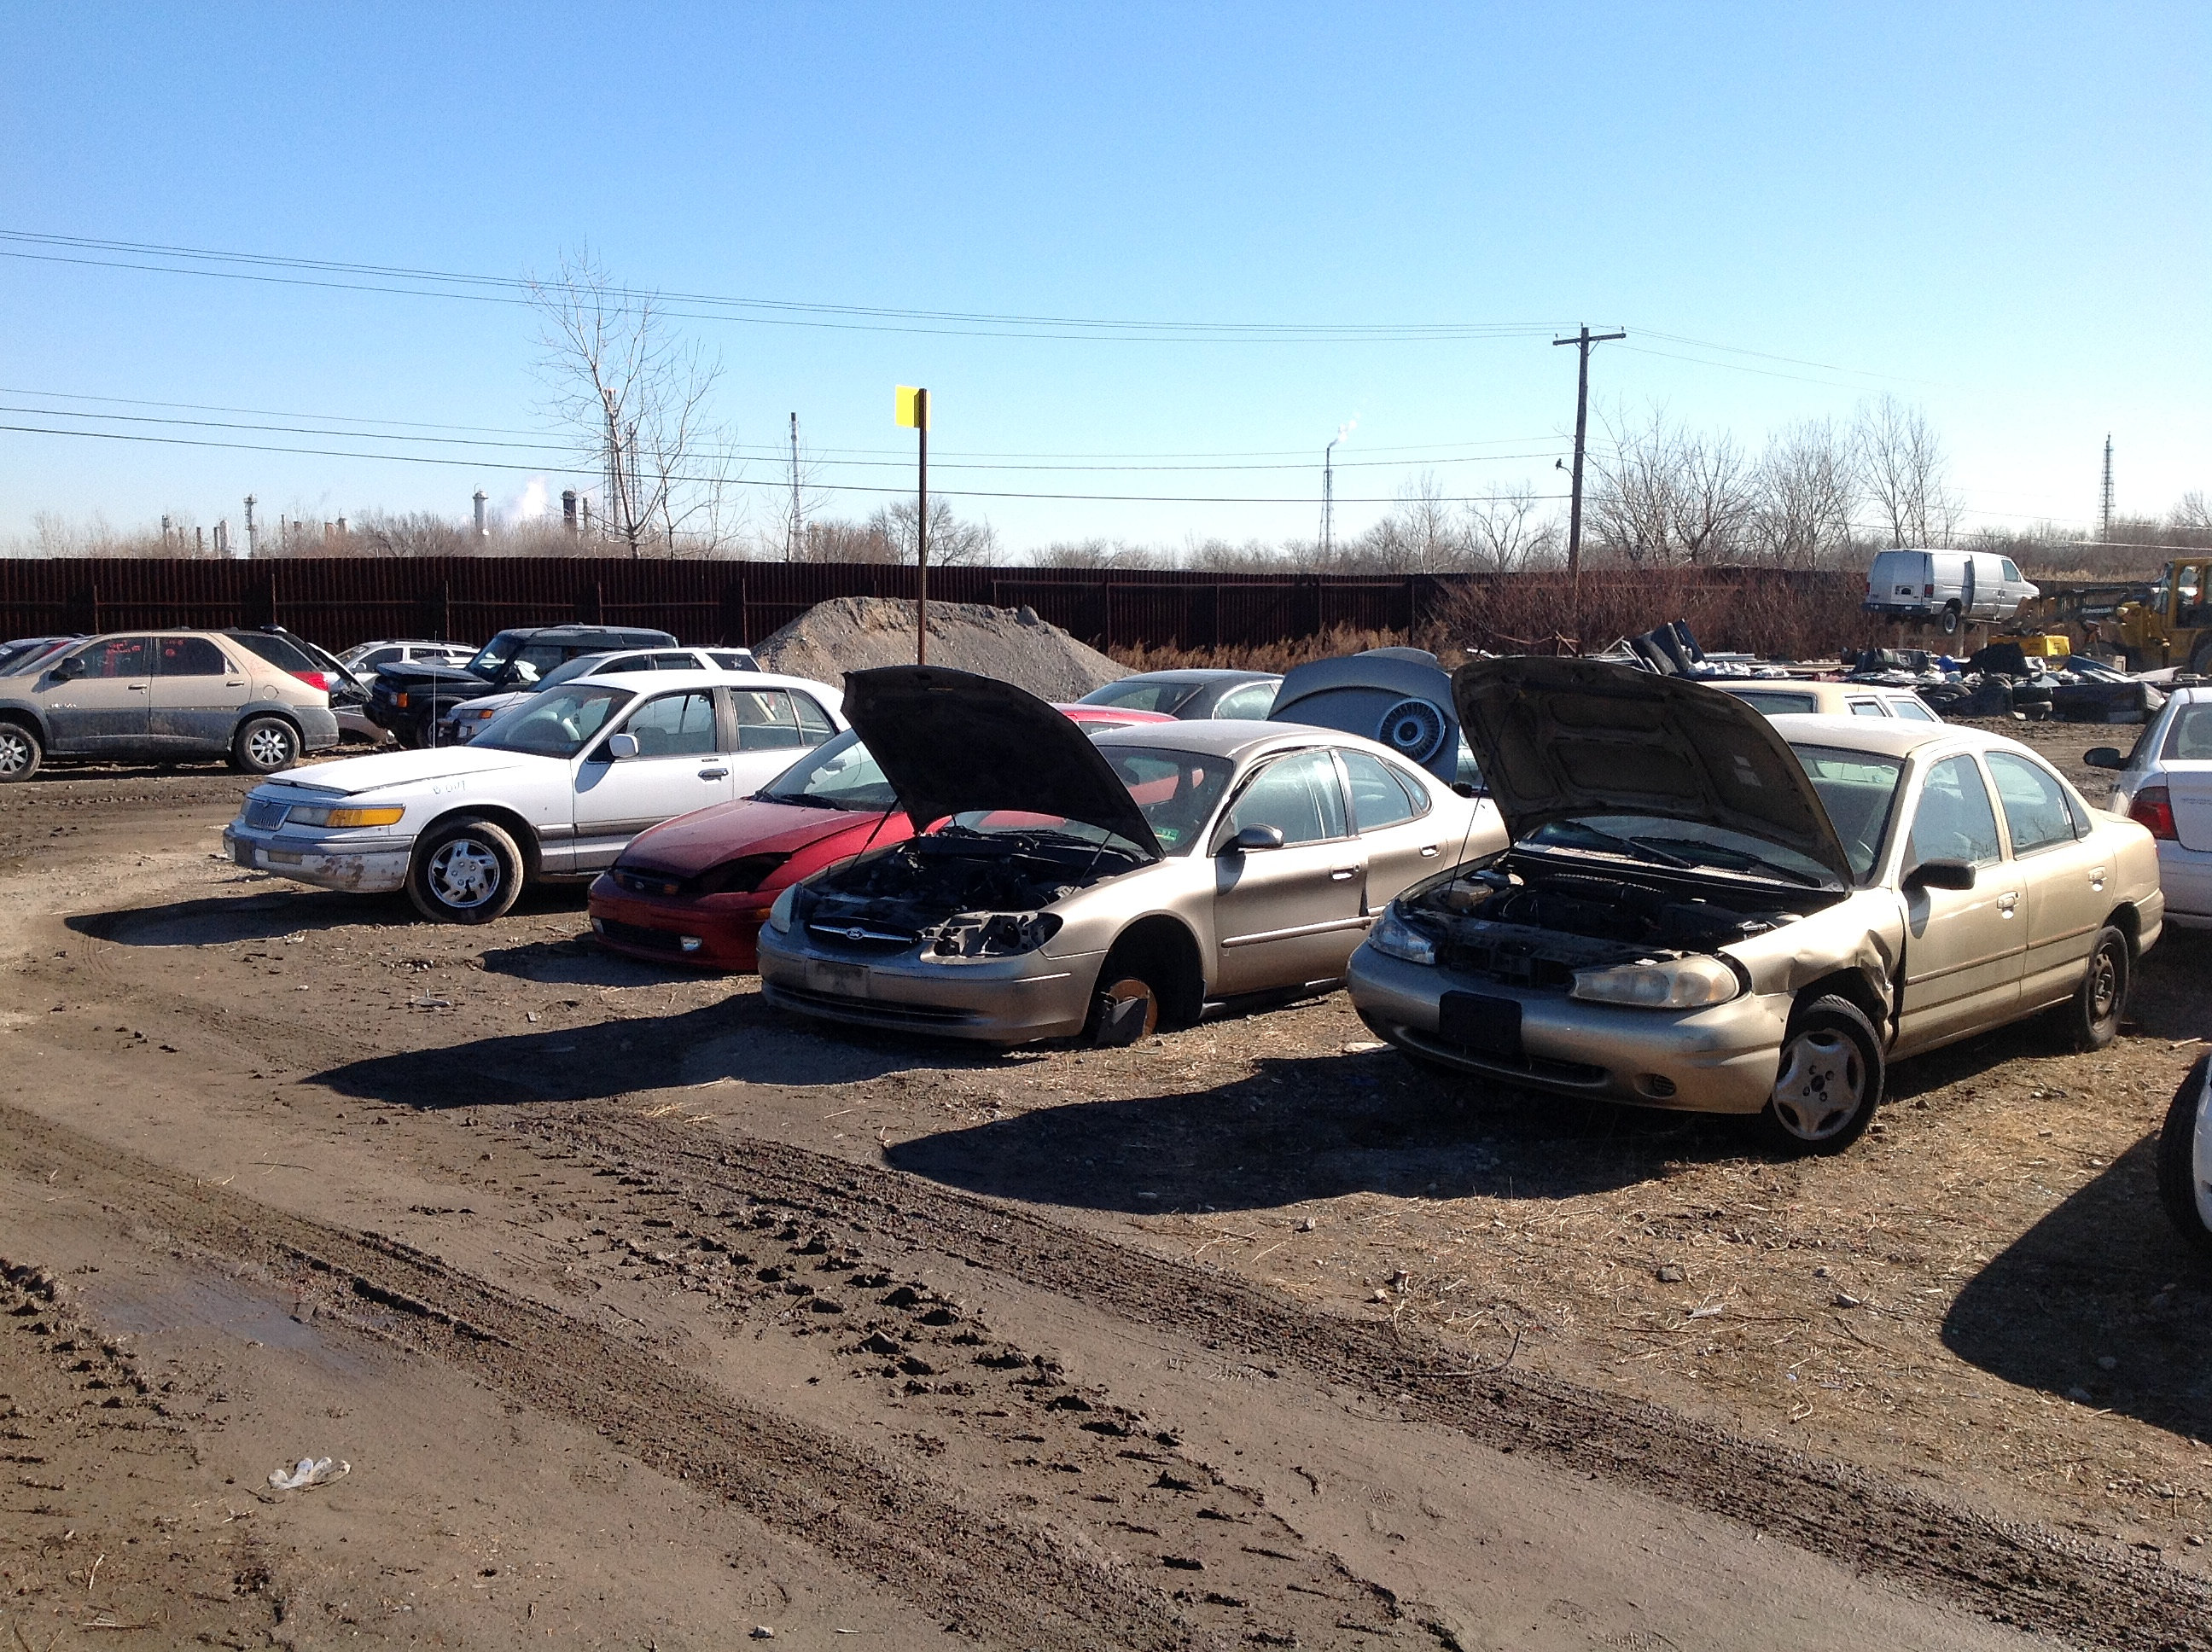 cash for junk cars in lincoln village that takes payment plan ...